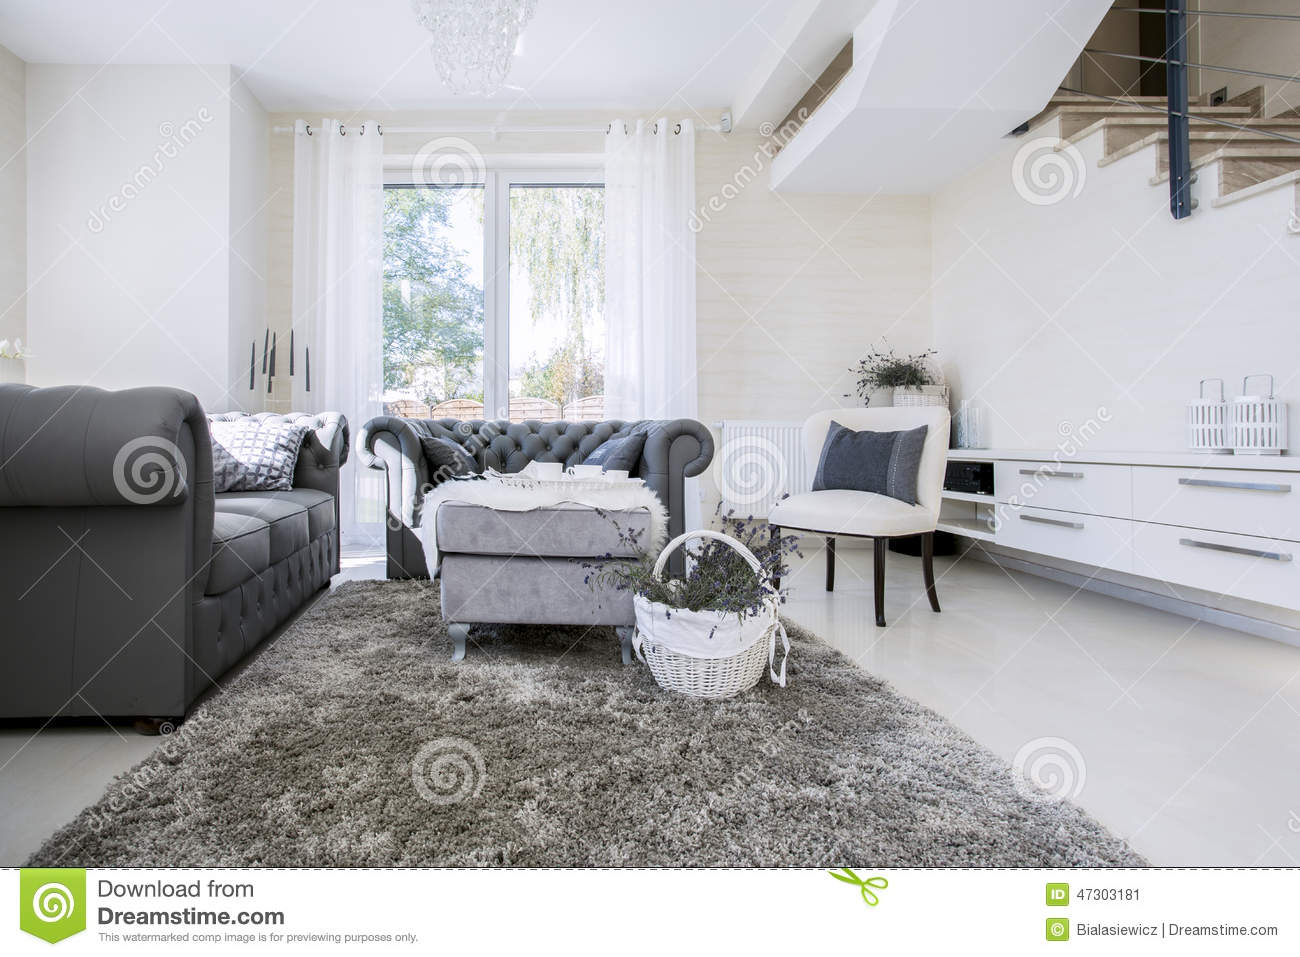 Woonkamer in wit design